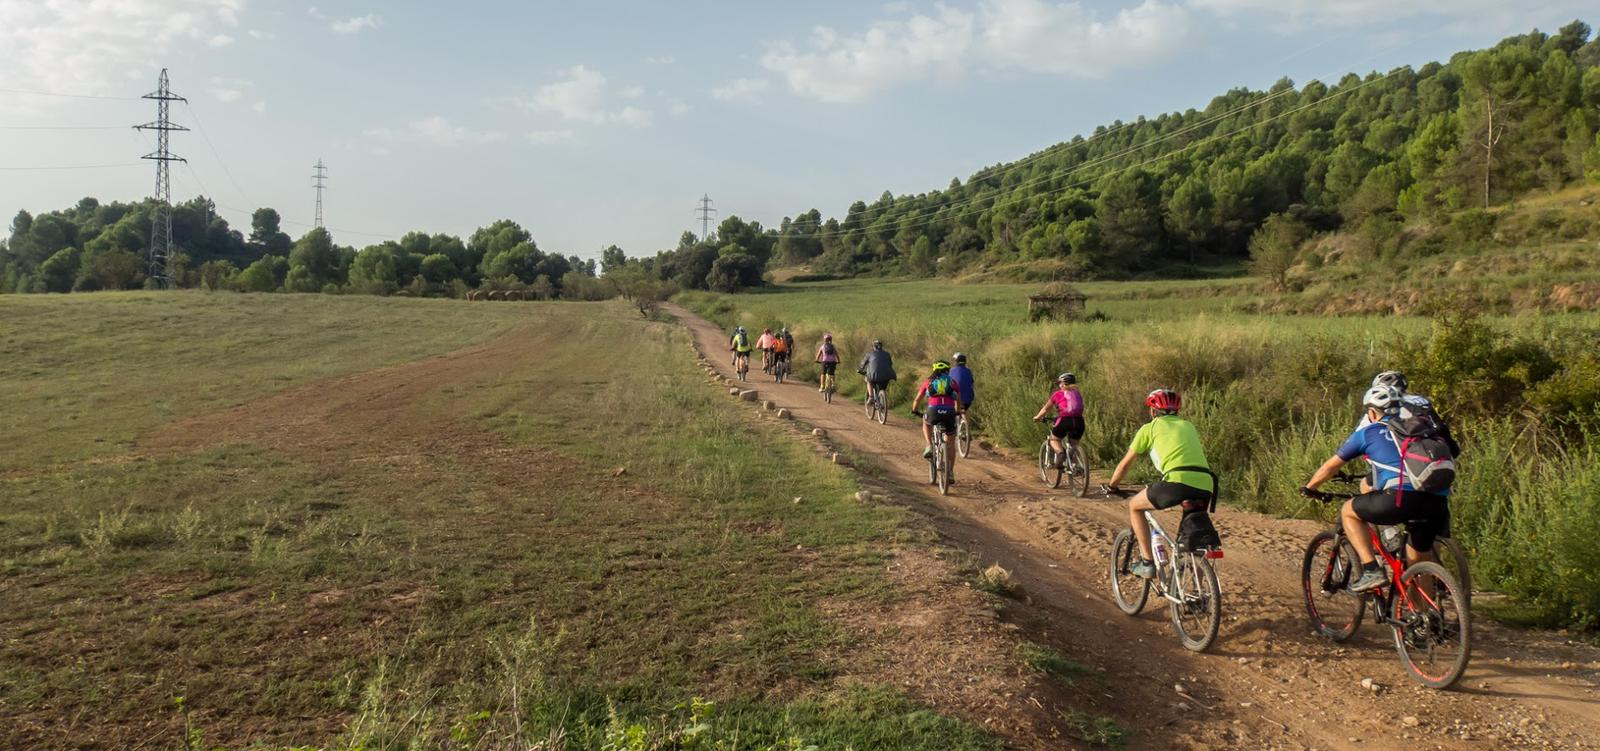 Photo of BICICET - Bici de Temporada - Per les tines del Bages (Llobregat)